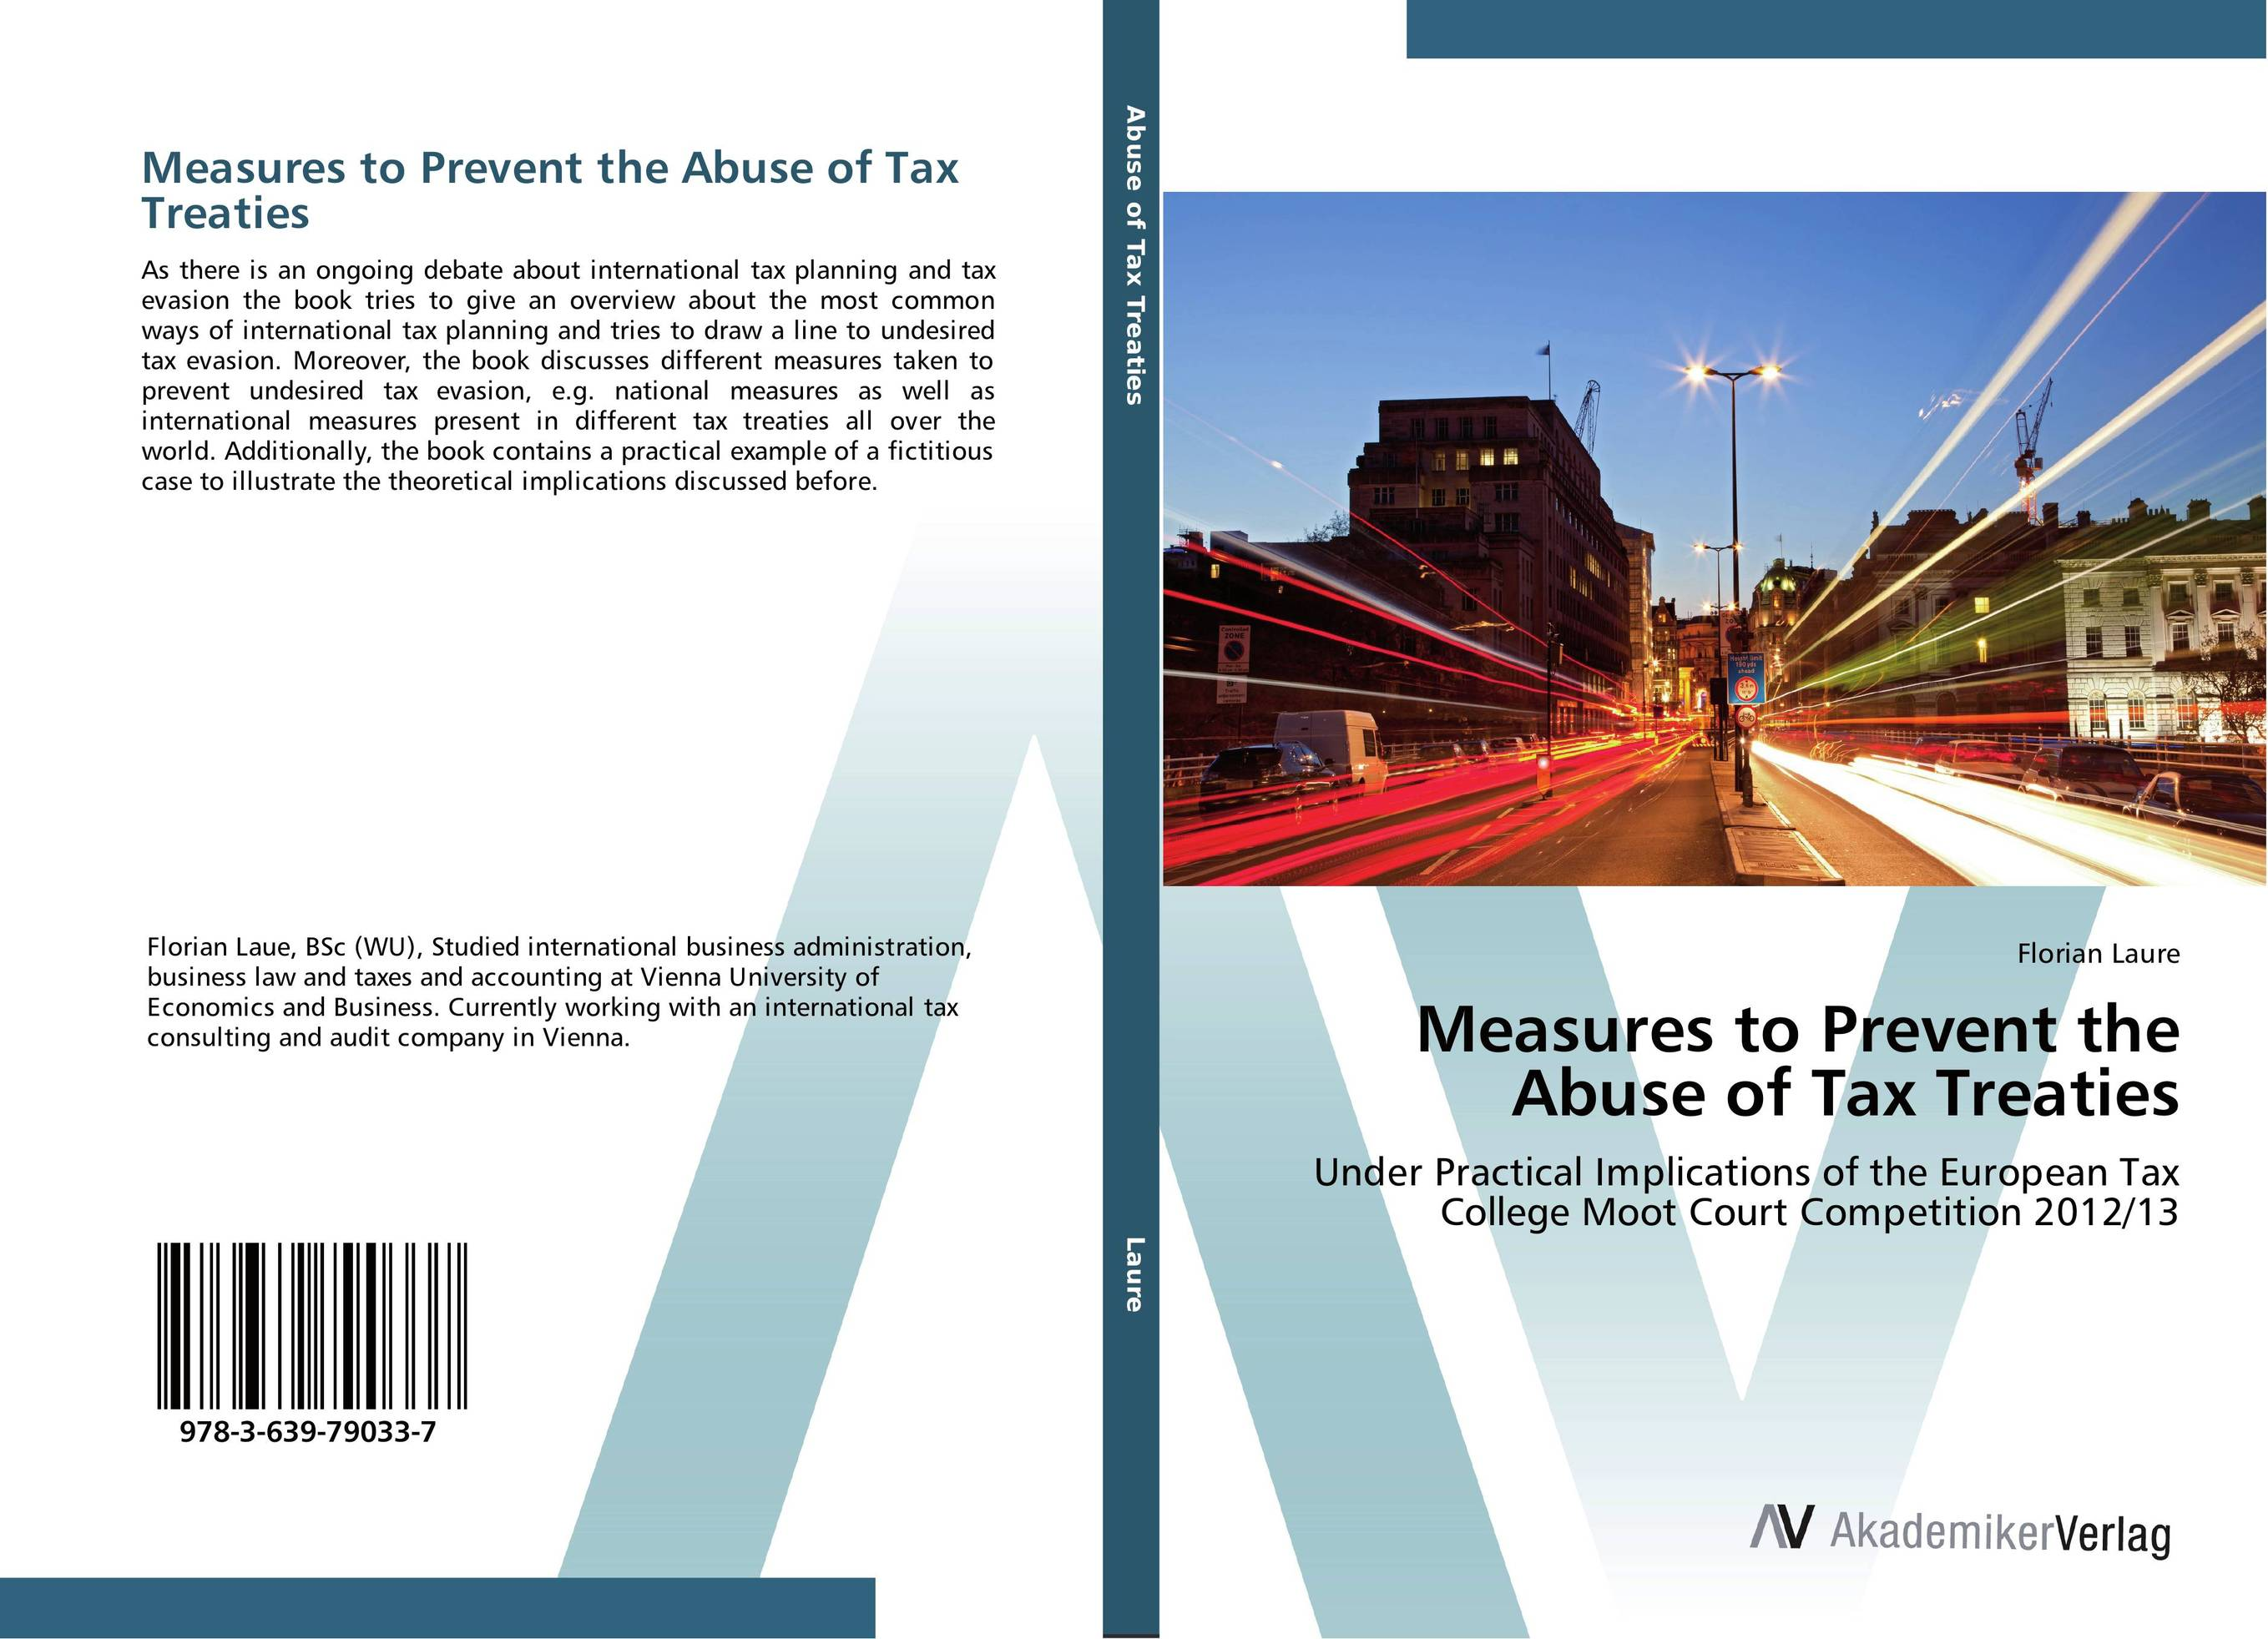 Measures to Prevent the Abuse of Tax Treaties divergence of risk measures across different market conditions